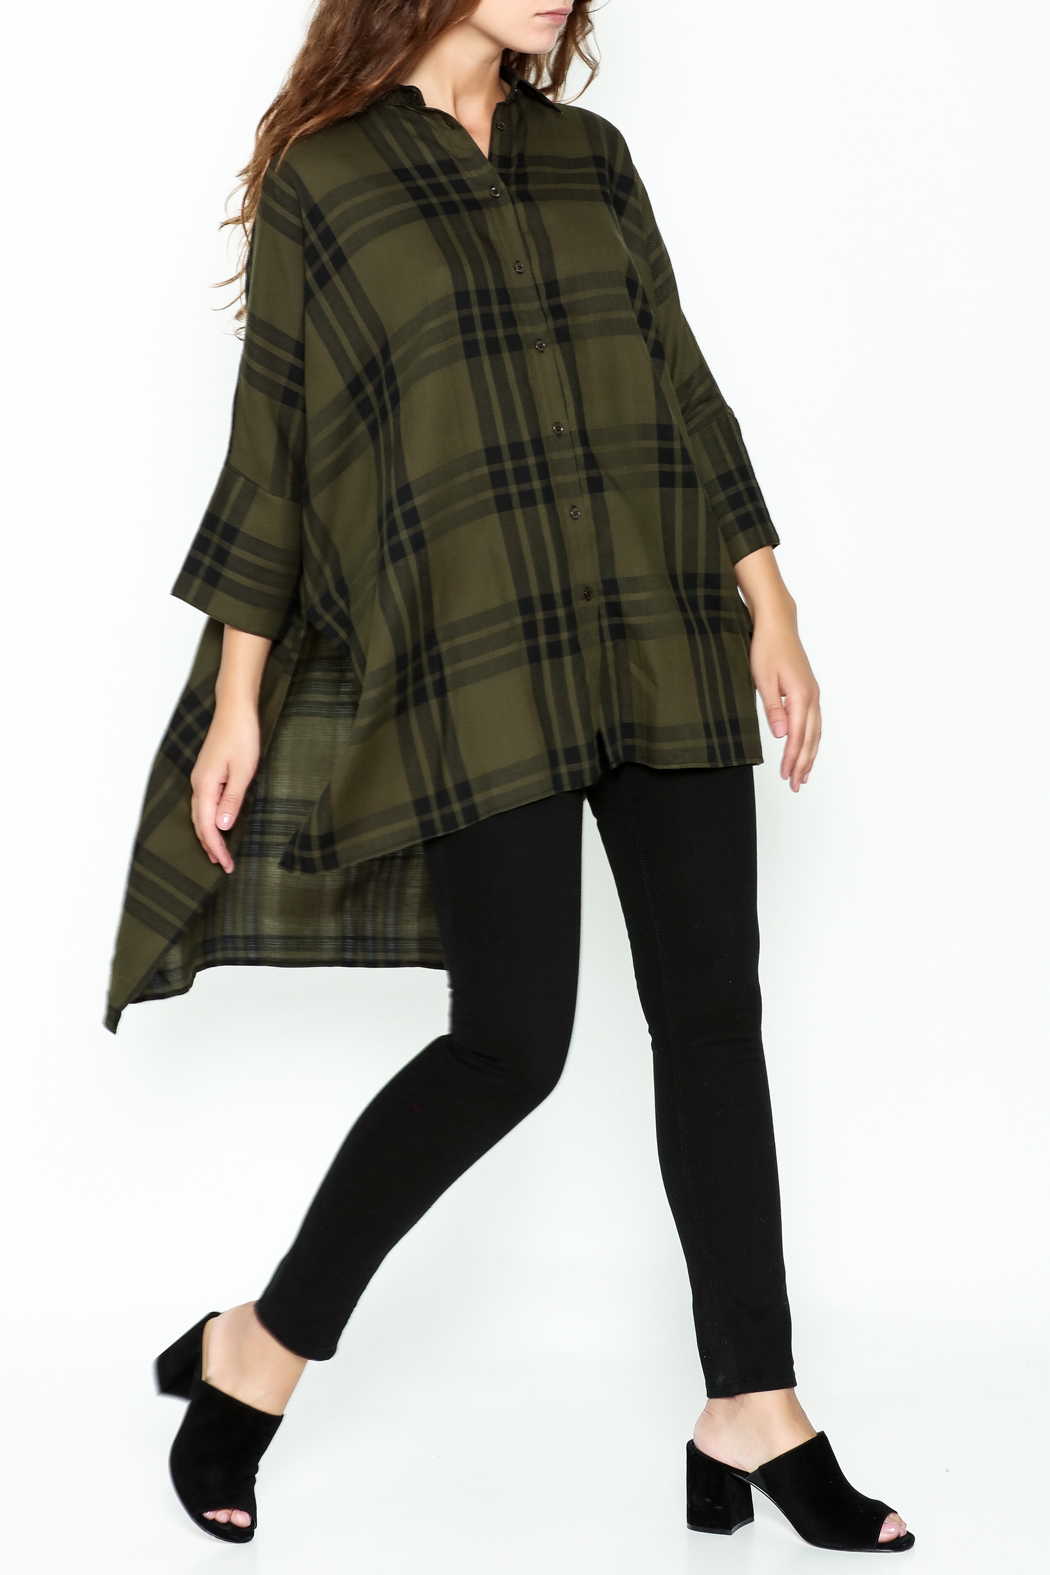 Katherine Barclay Oversized Button Up Tunic - Side Cropped Image